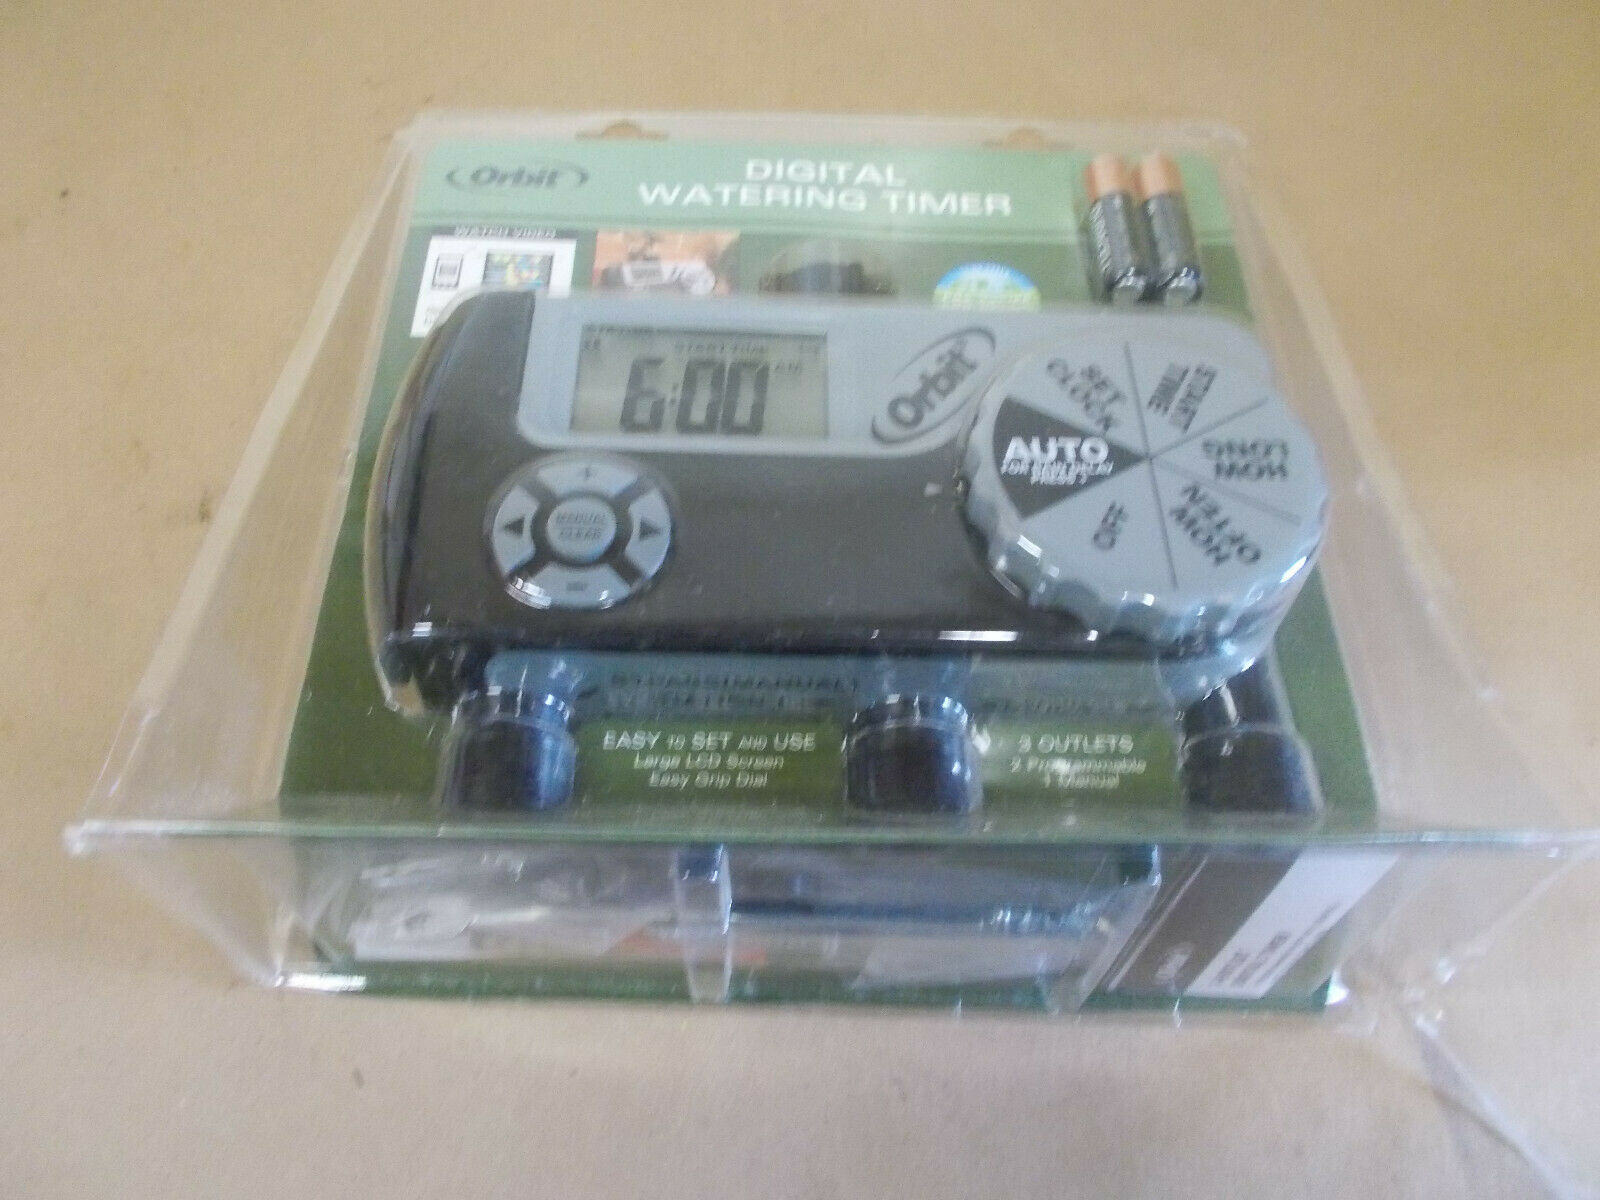 New In Box Orbit 543562 3 outlet Programmable Digital Hose Watering Timer